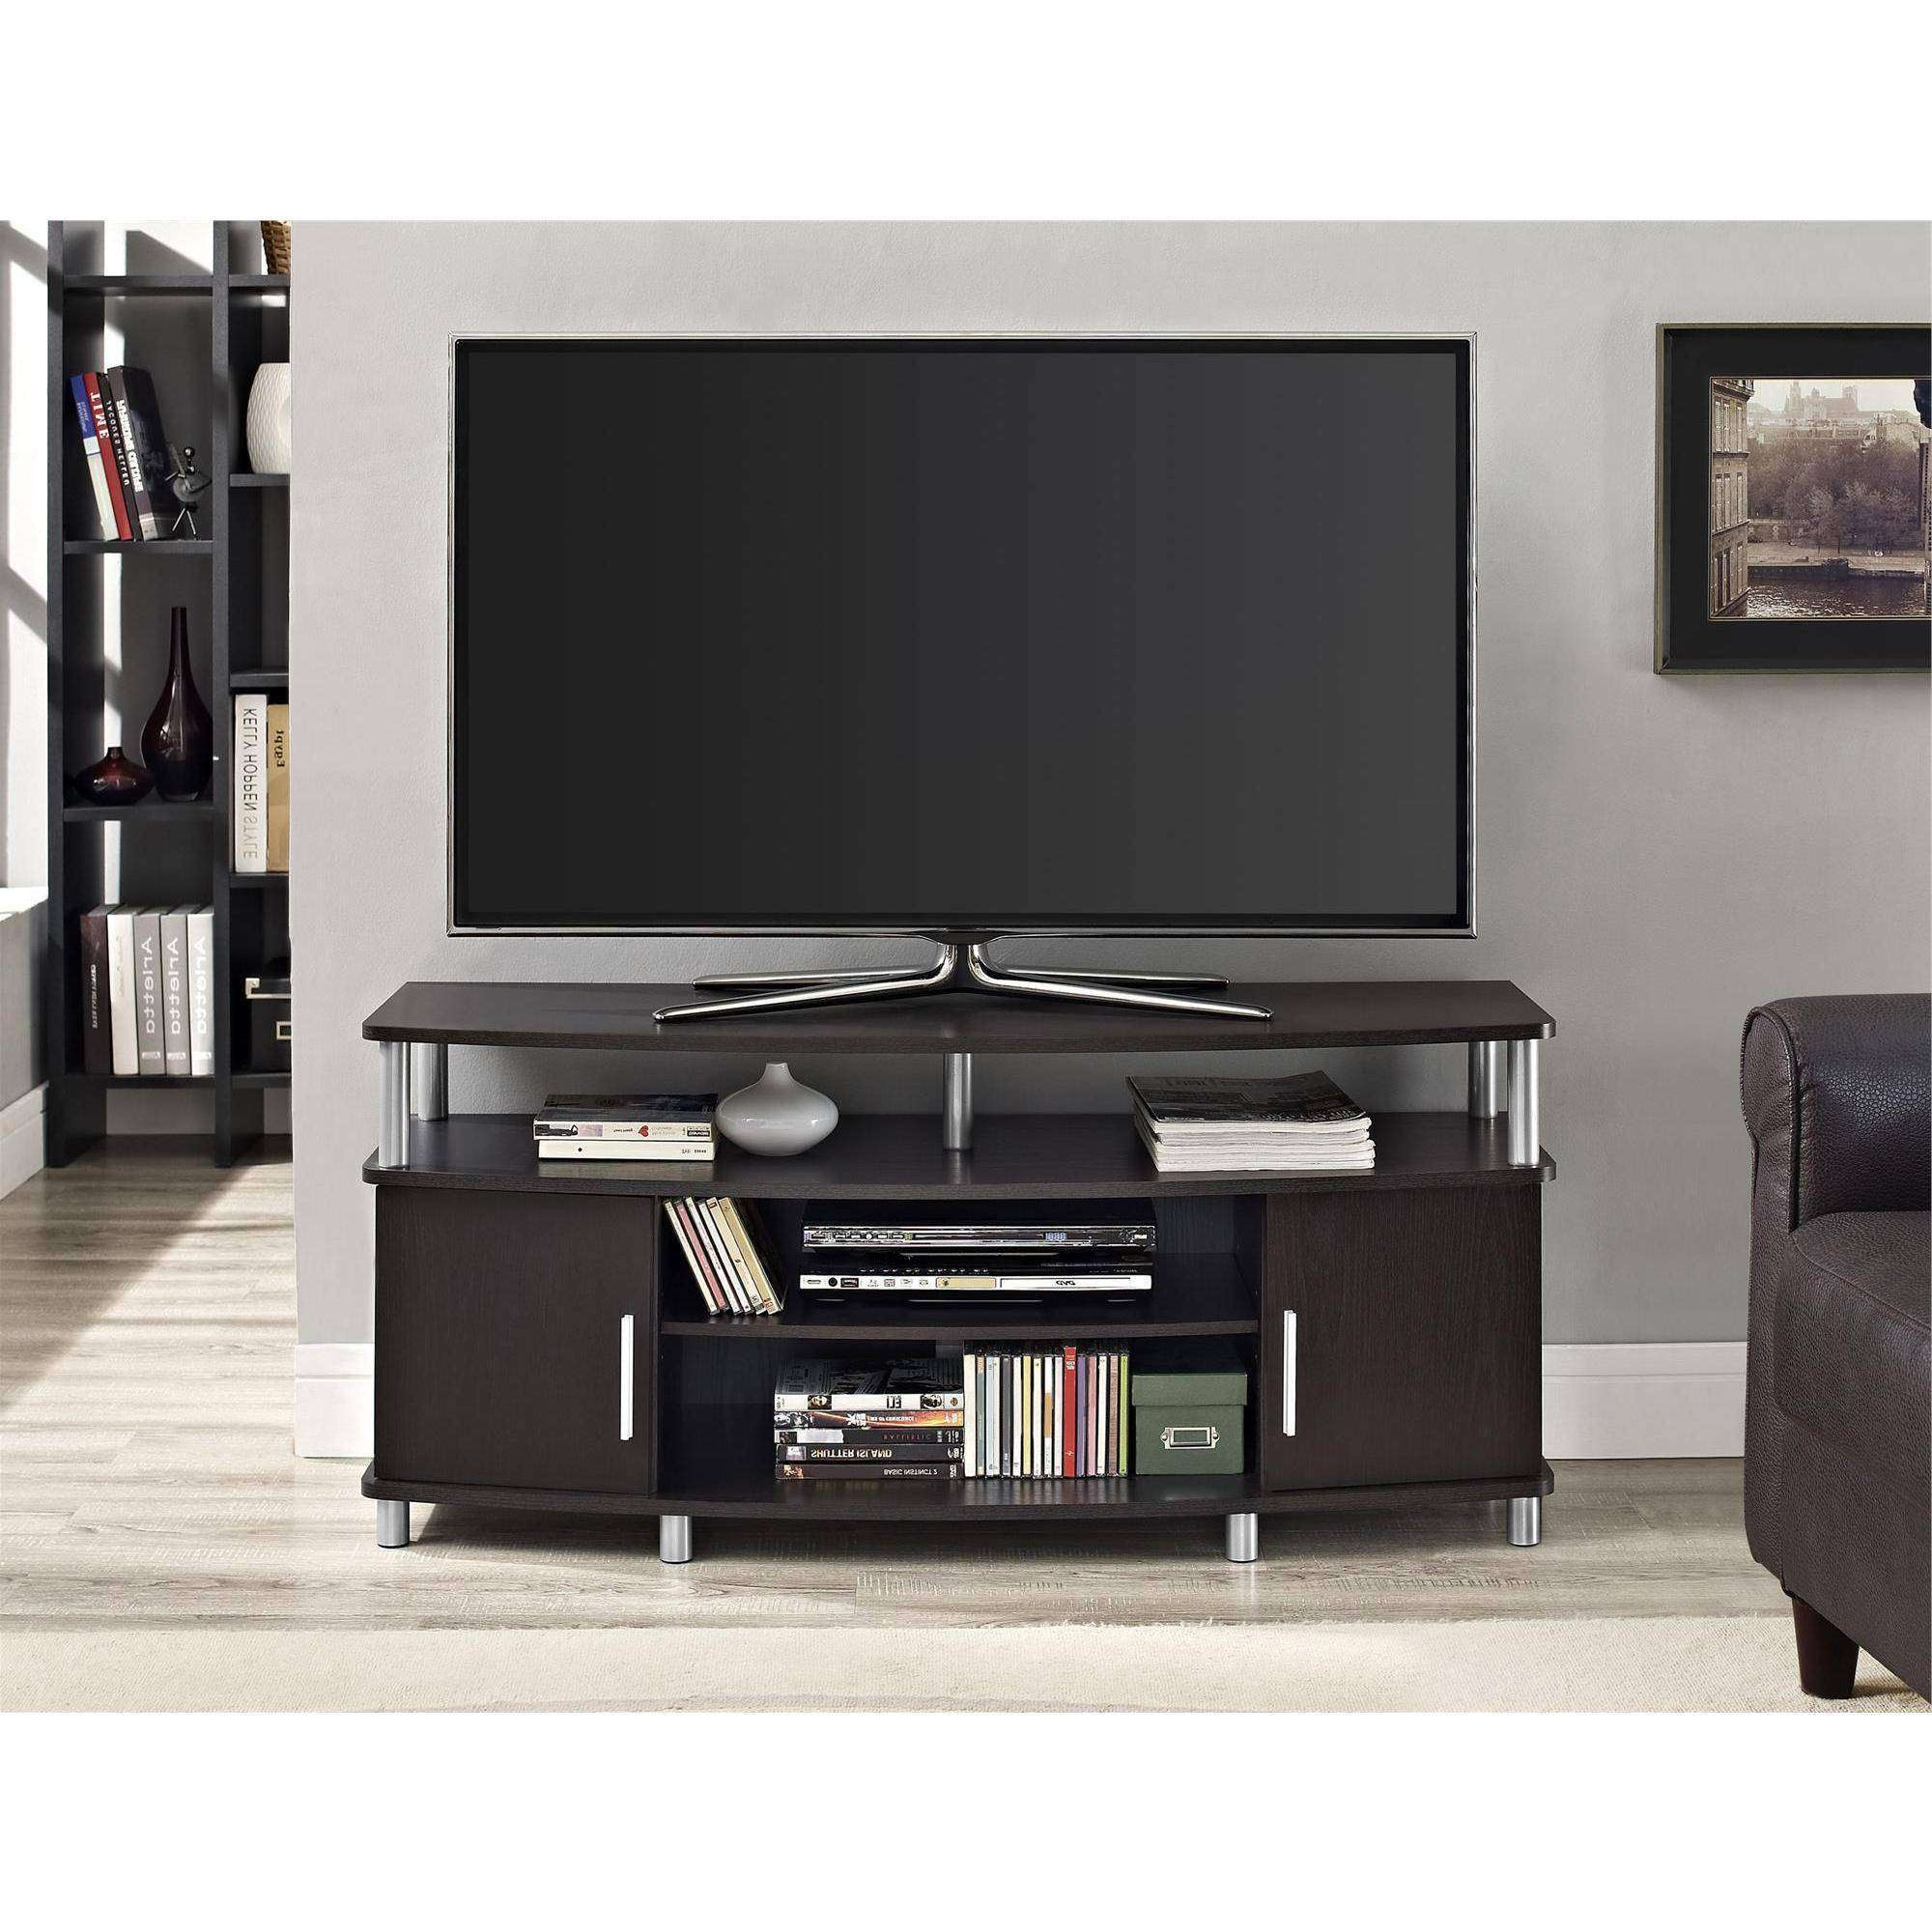 "Carson 3 Piece Entertainment Center For Tvs Up To 50"", Multiple With Regard To Tv Stands For 50 Inch Tvs (View 3 of 15)"